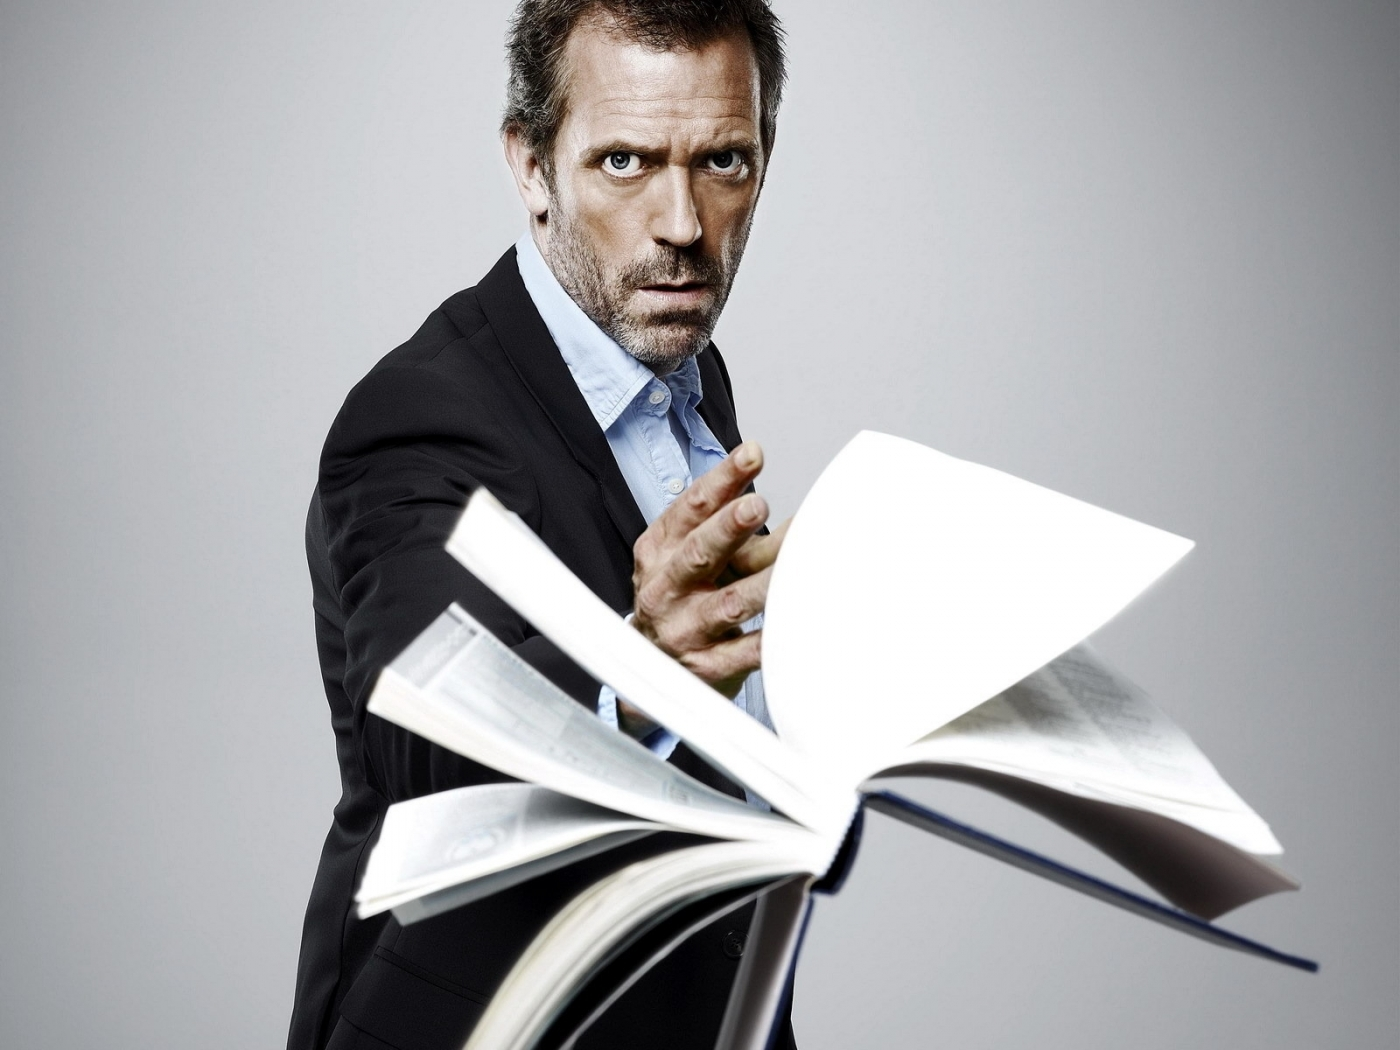 48101 download wallpaper Cinema, People, Men, House M.d., Hugh Laurie screensavers and pictures for free